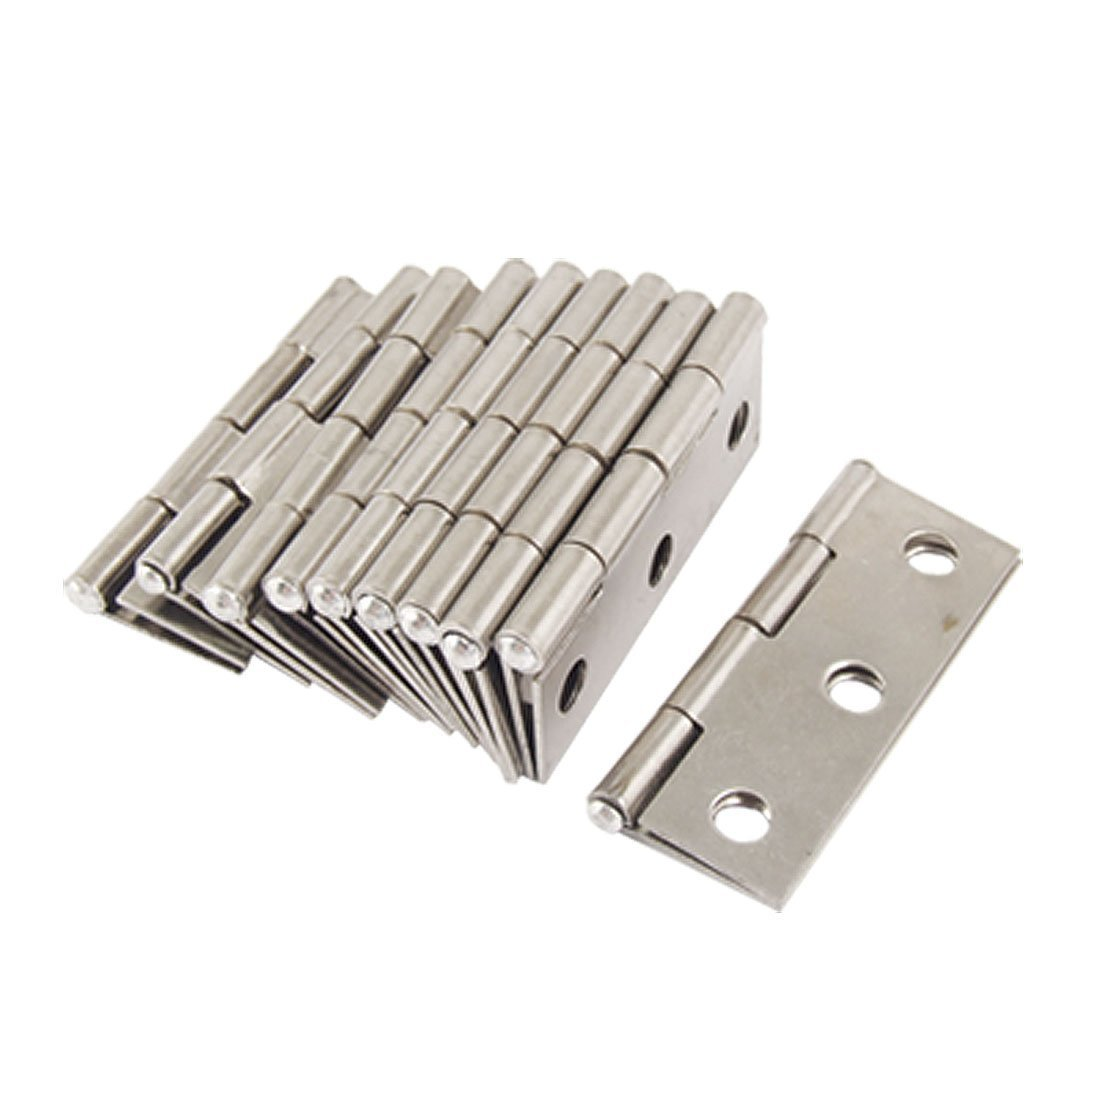 Onwon 10 Pcs Folding Butt Hinges Silver Tone Home Furniture Hardware Door Hinge